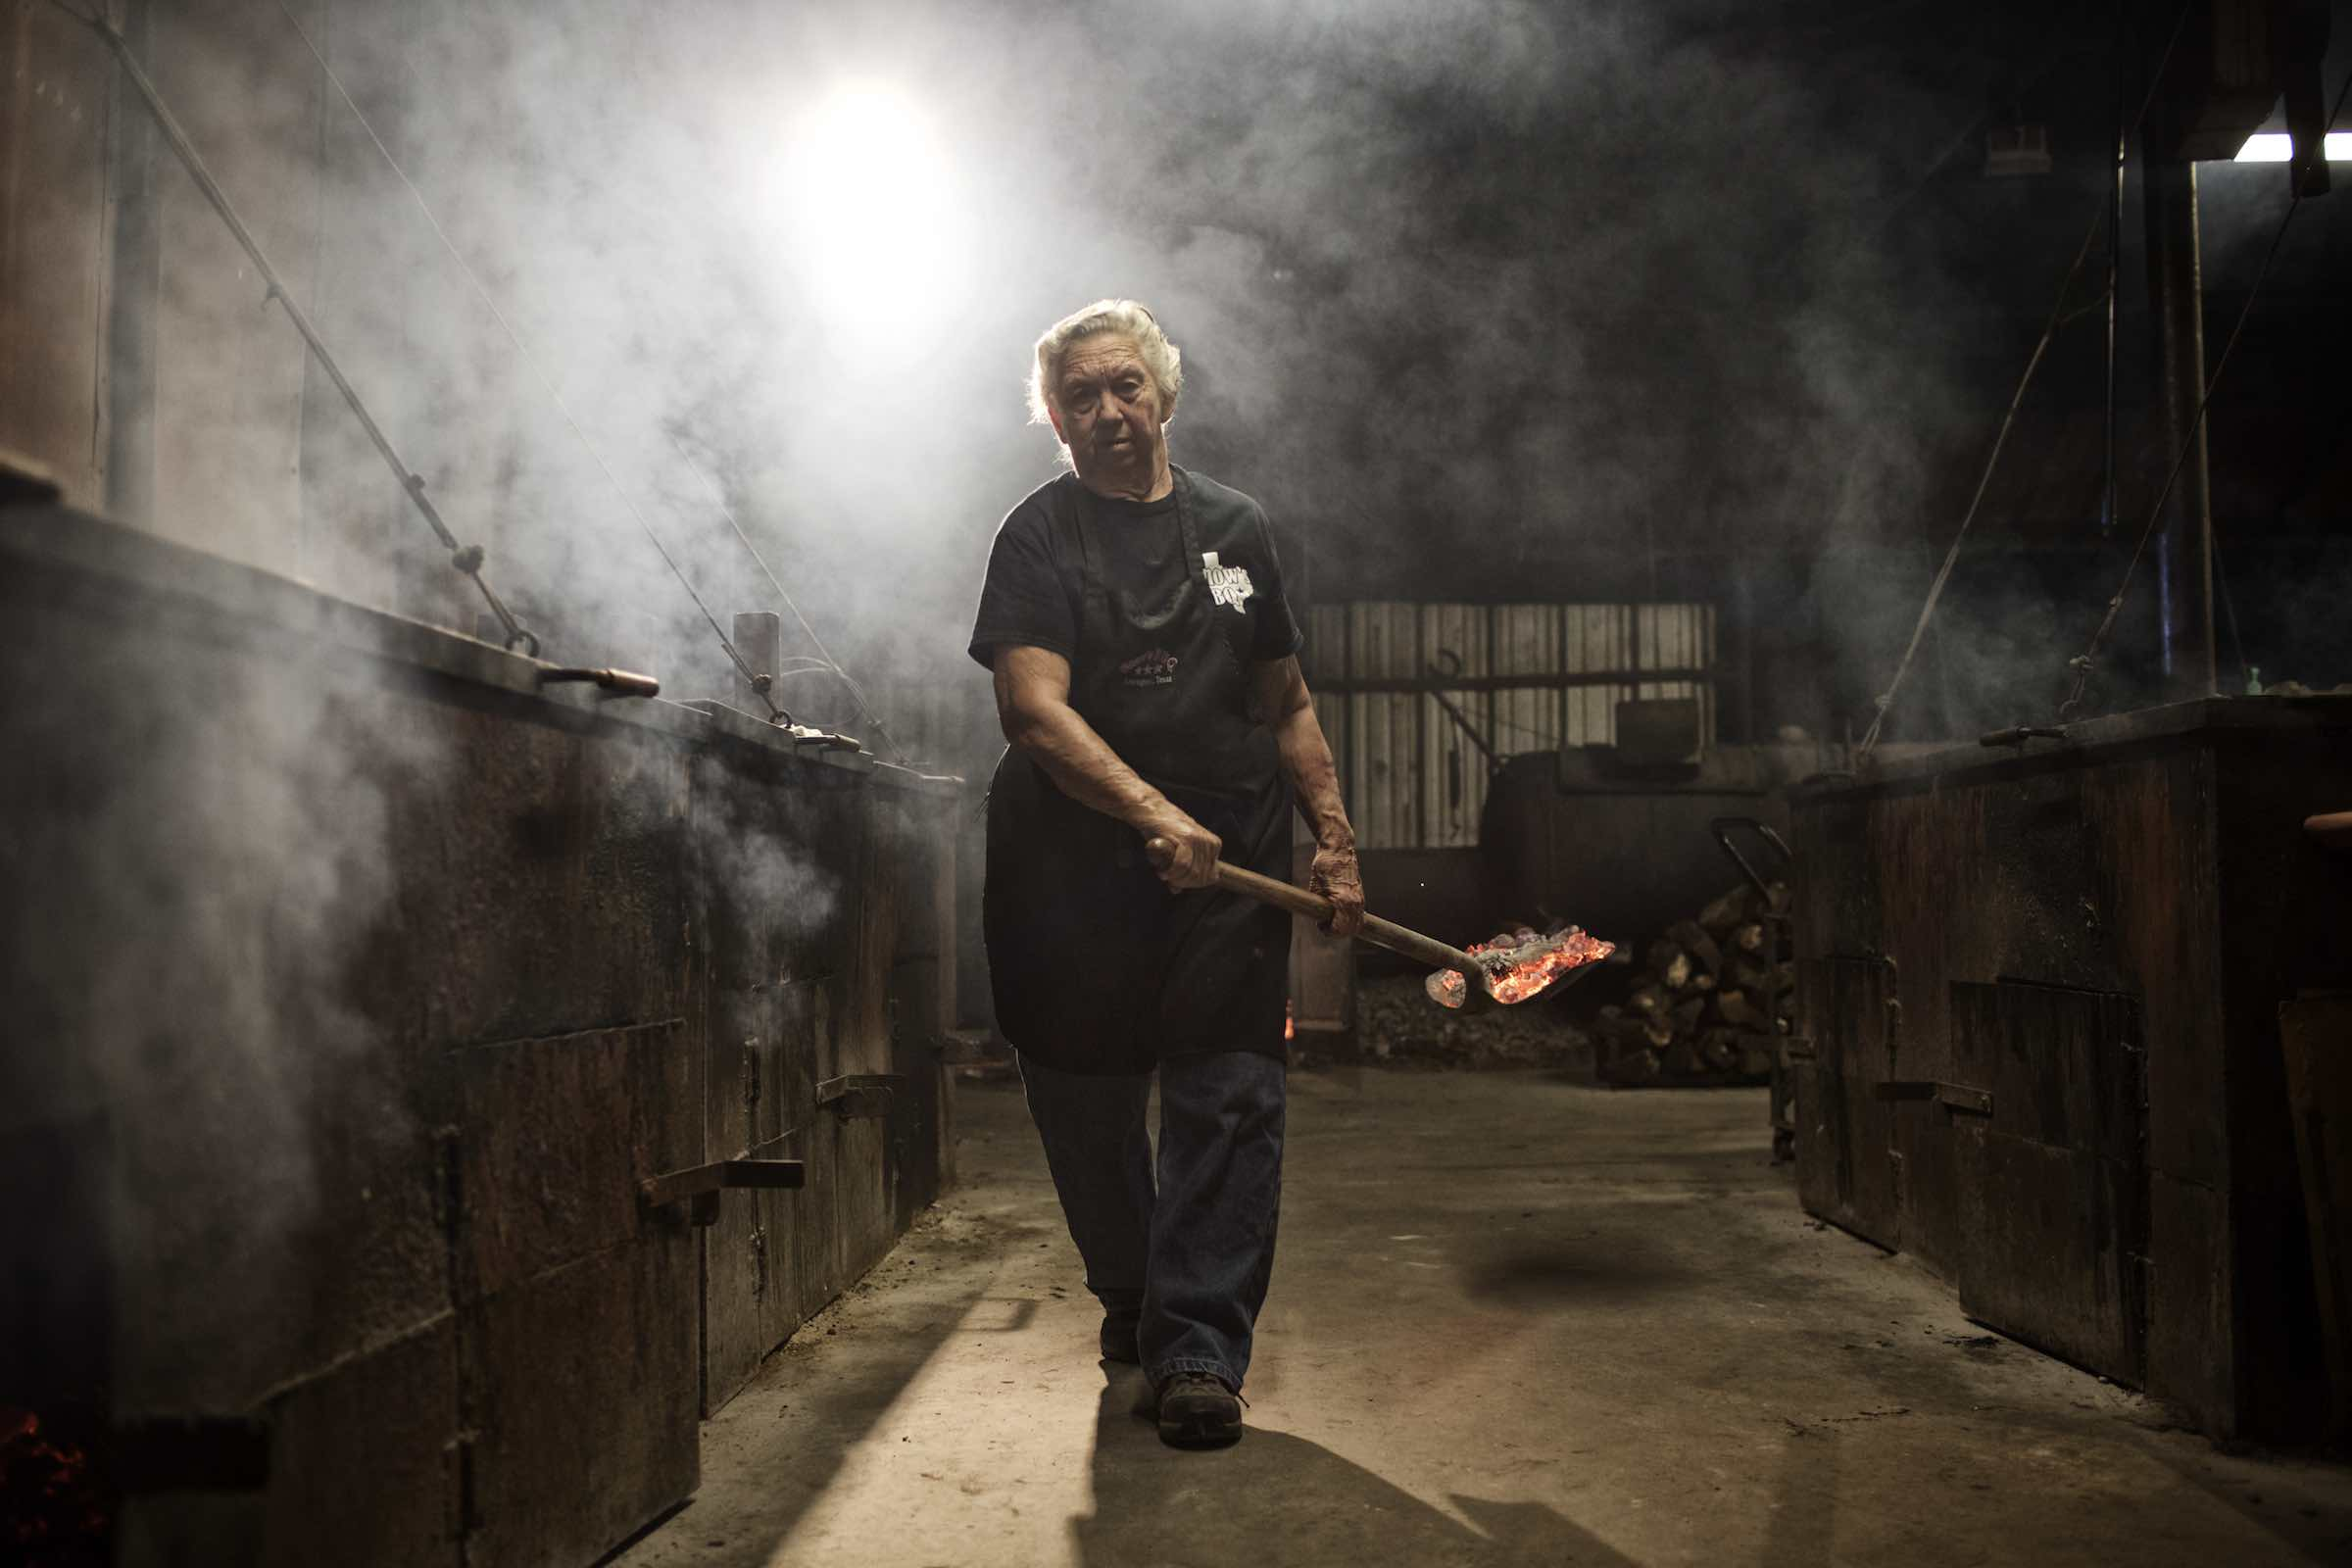 Pit master carrying hot coals on a shovel.